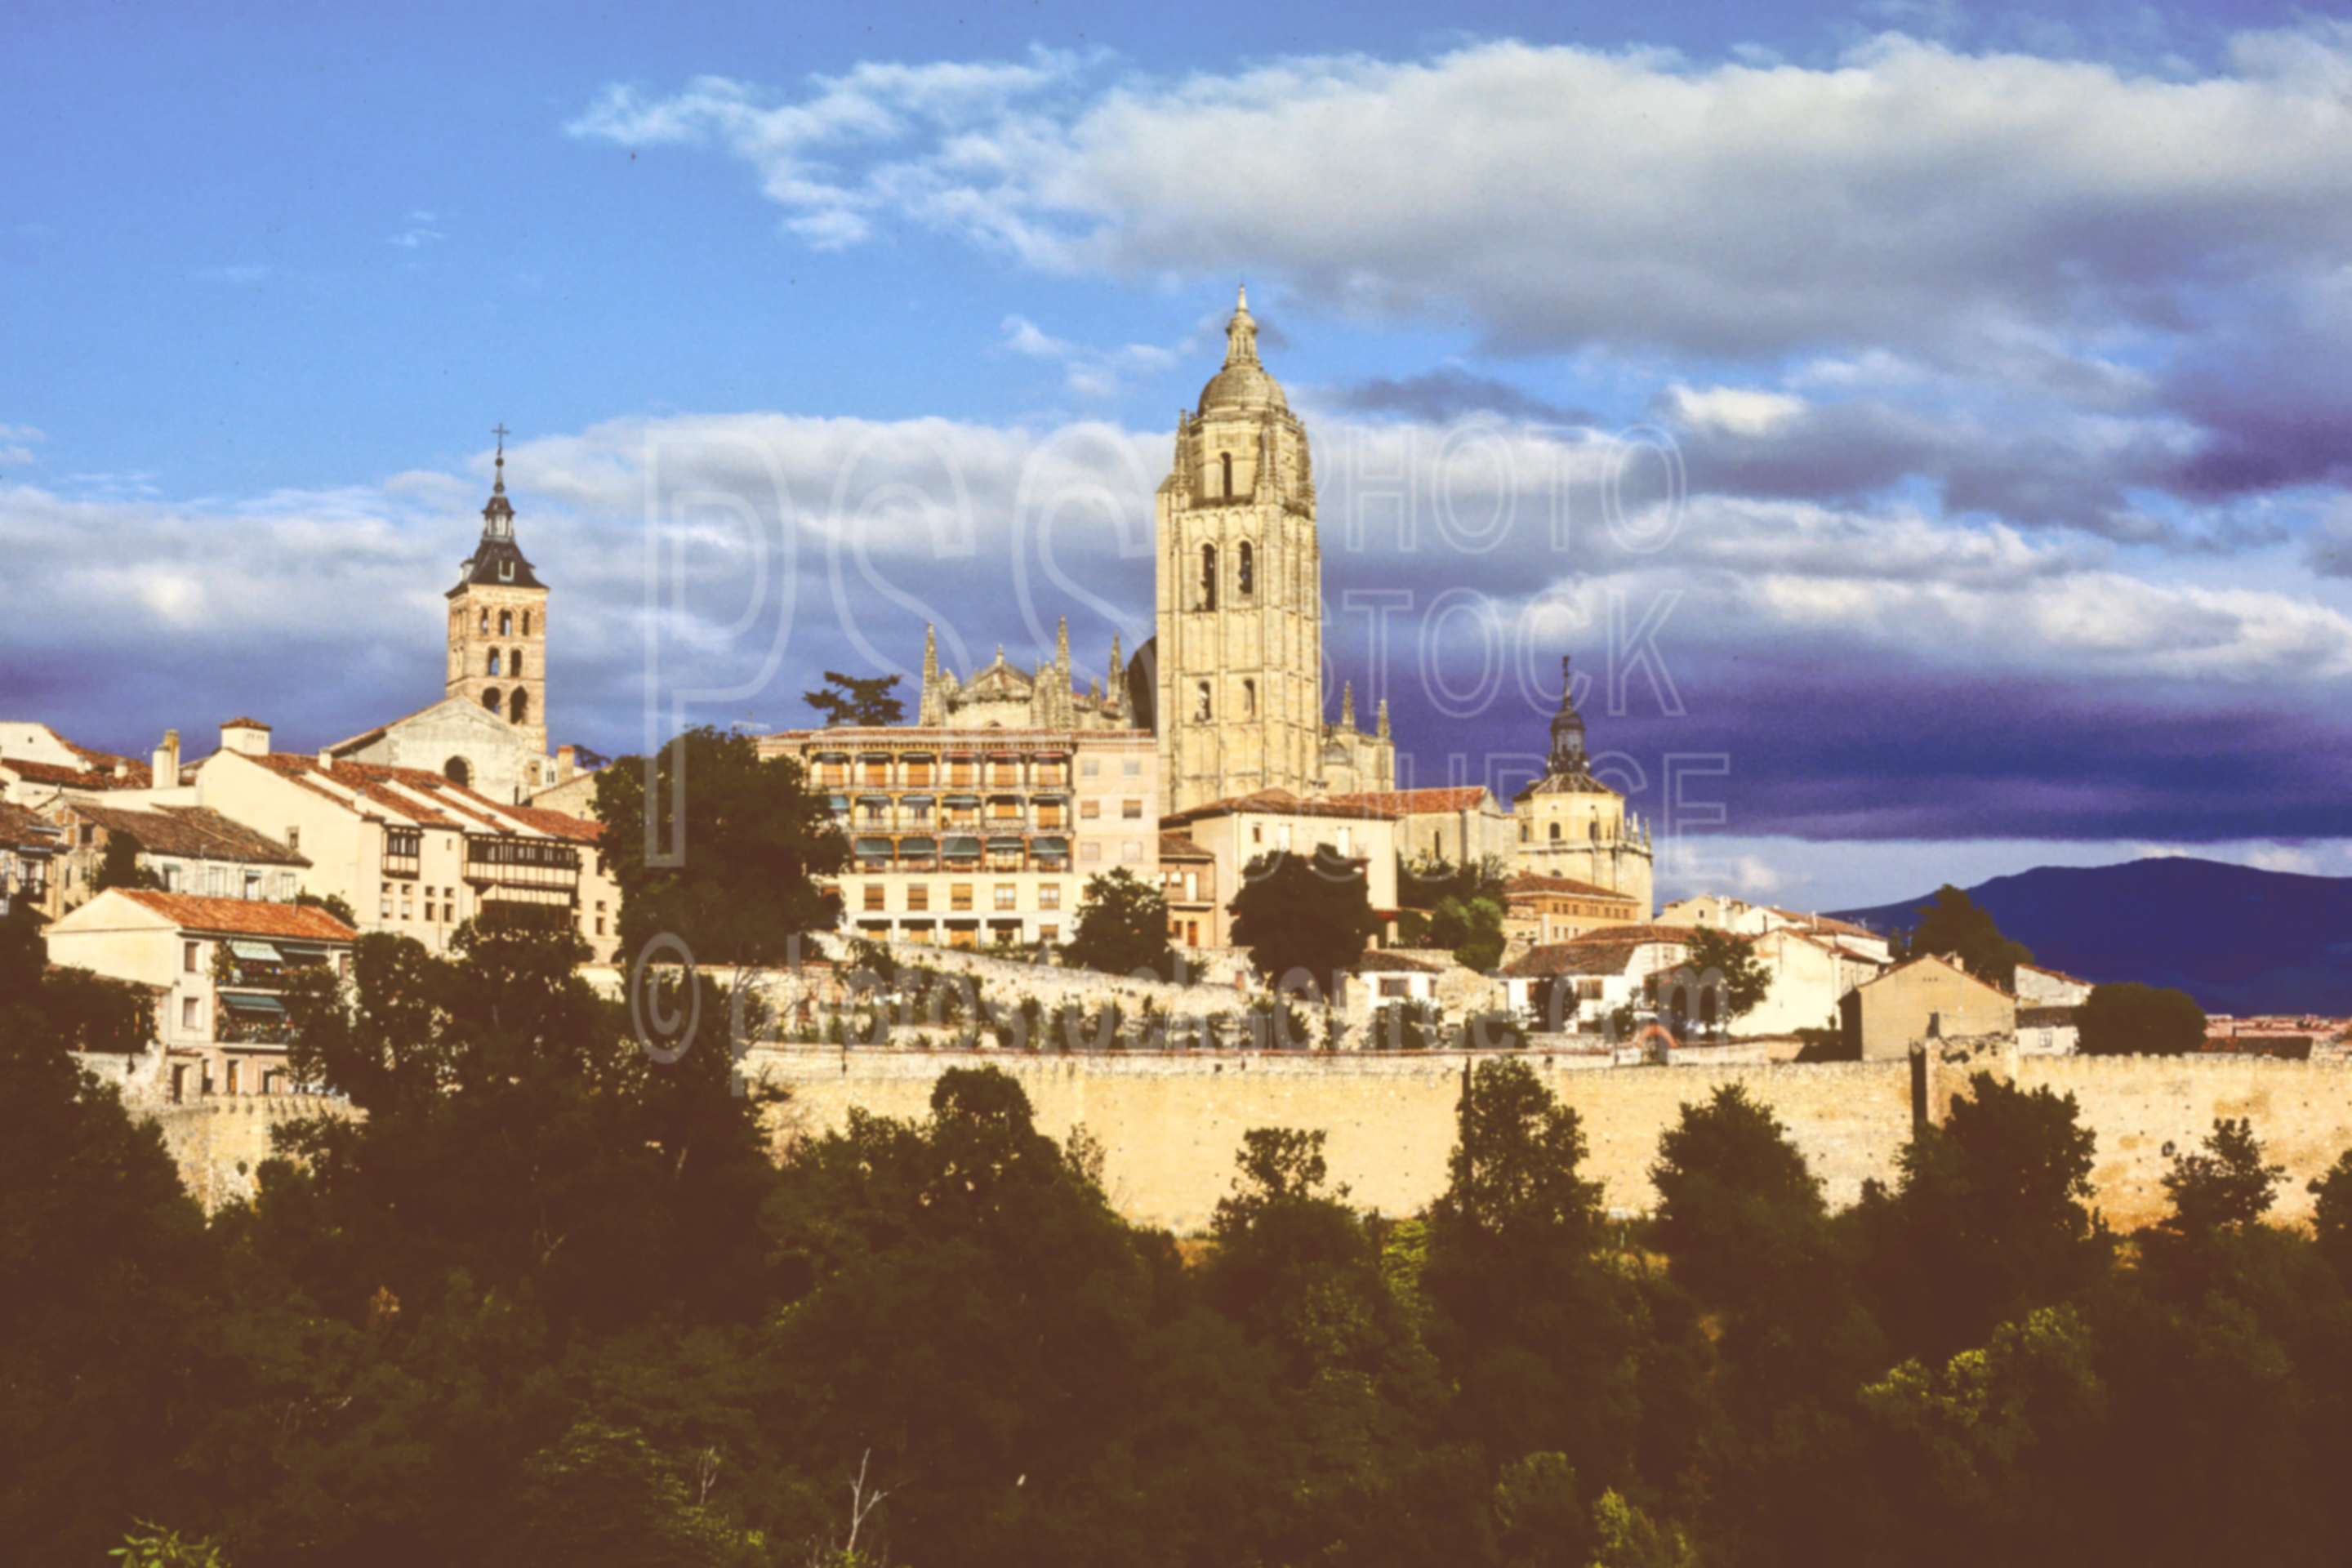 Cathedral,church,city,europe,cities,churches